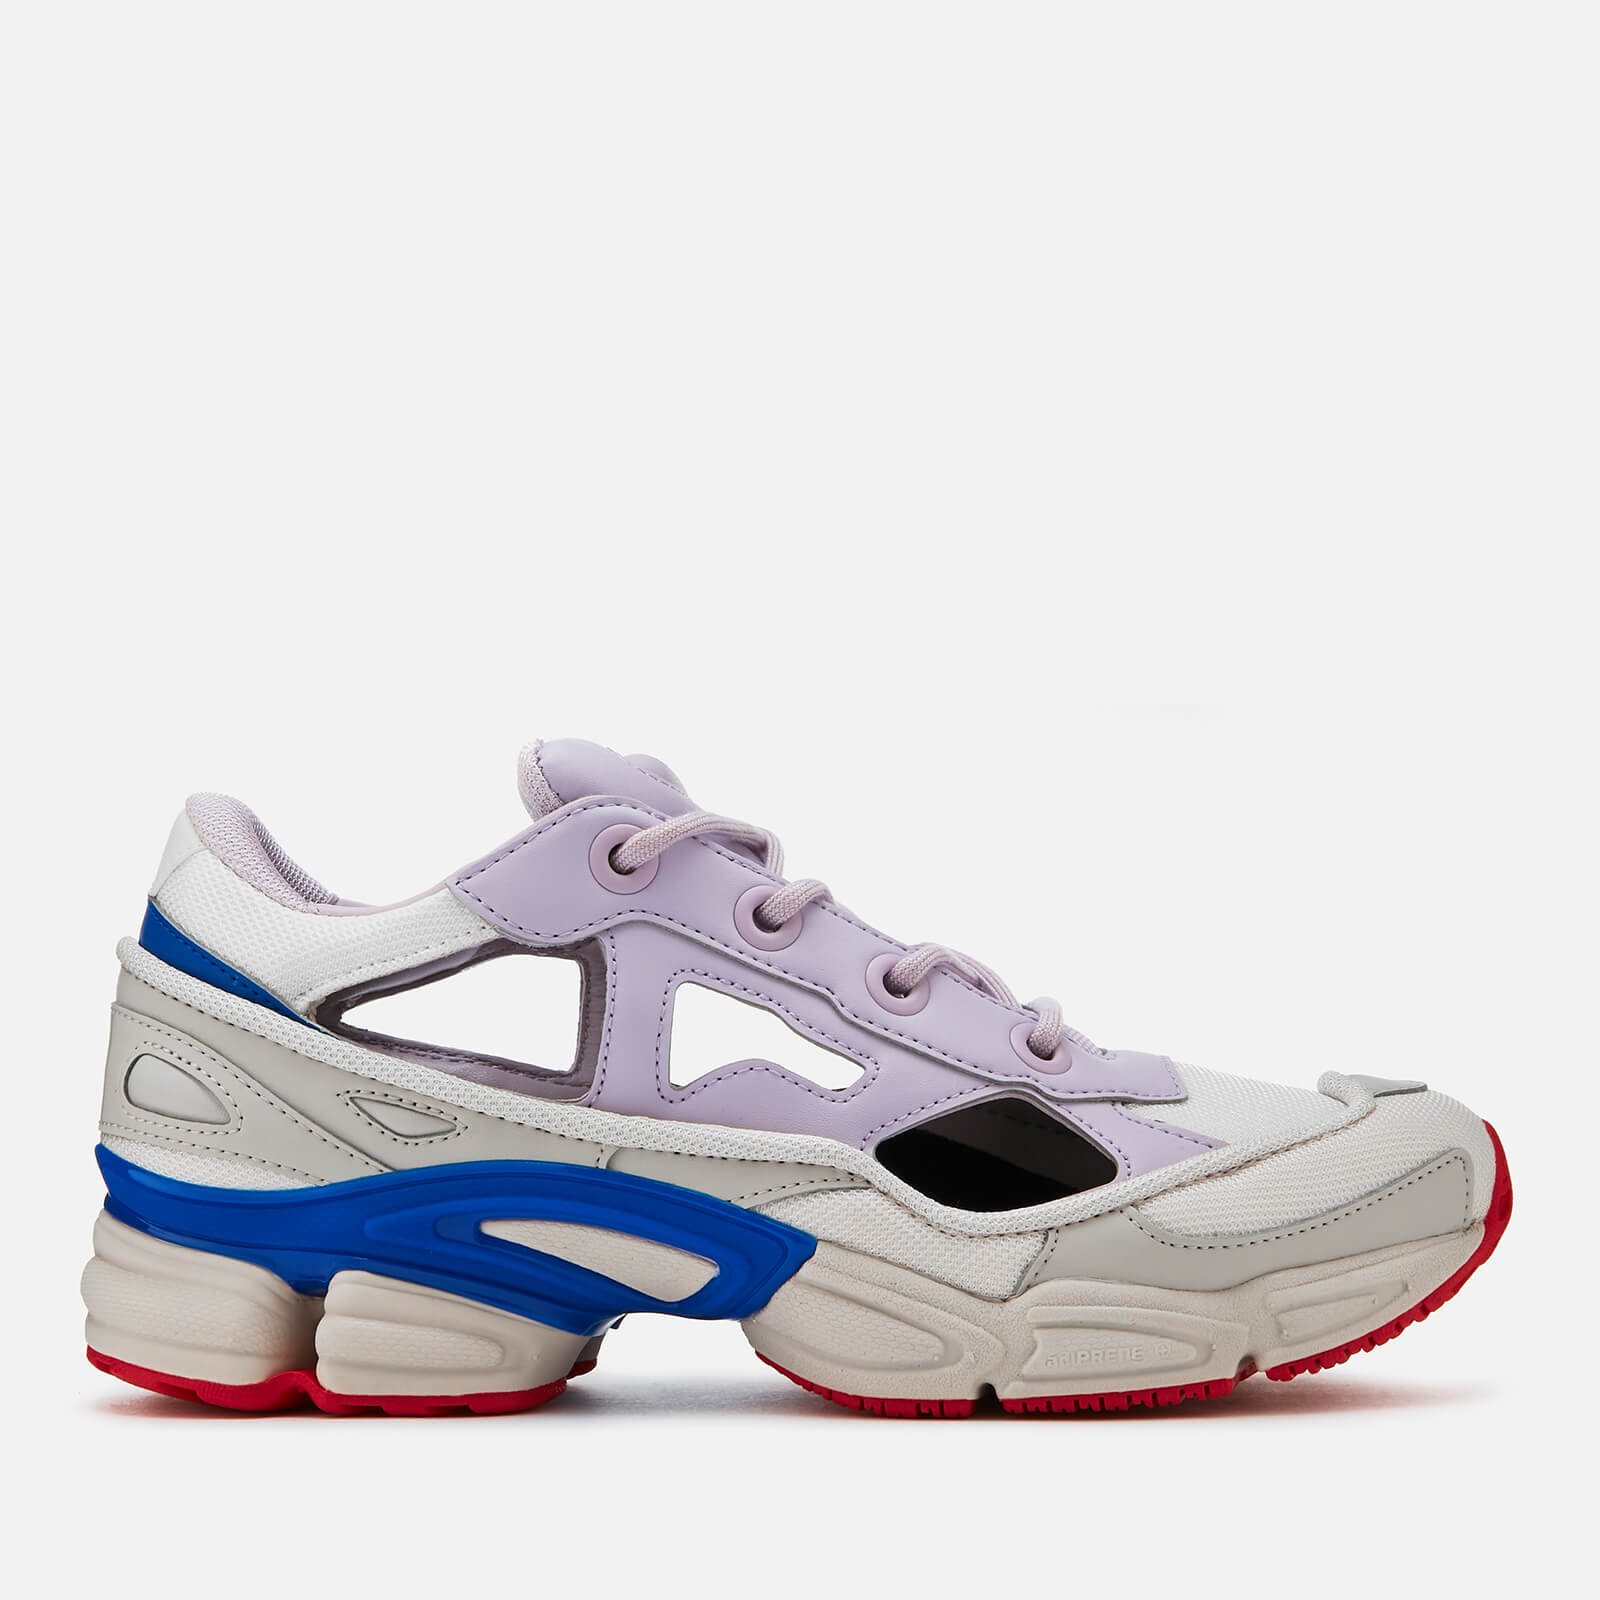 b65238b5eb0008 adidas by Raf Simons Men s Replicant Ozweego Trainers - C Brown White -  Free UK Delivery over £50